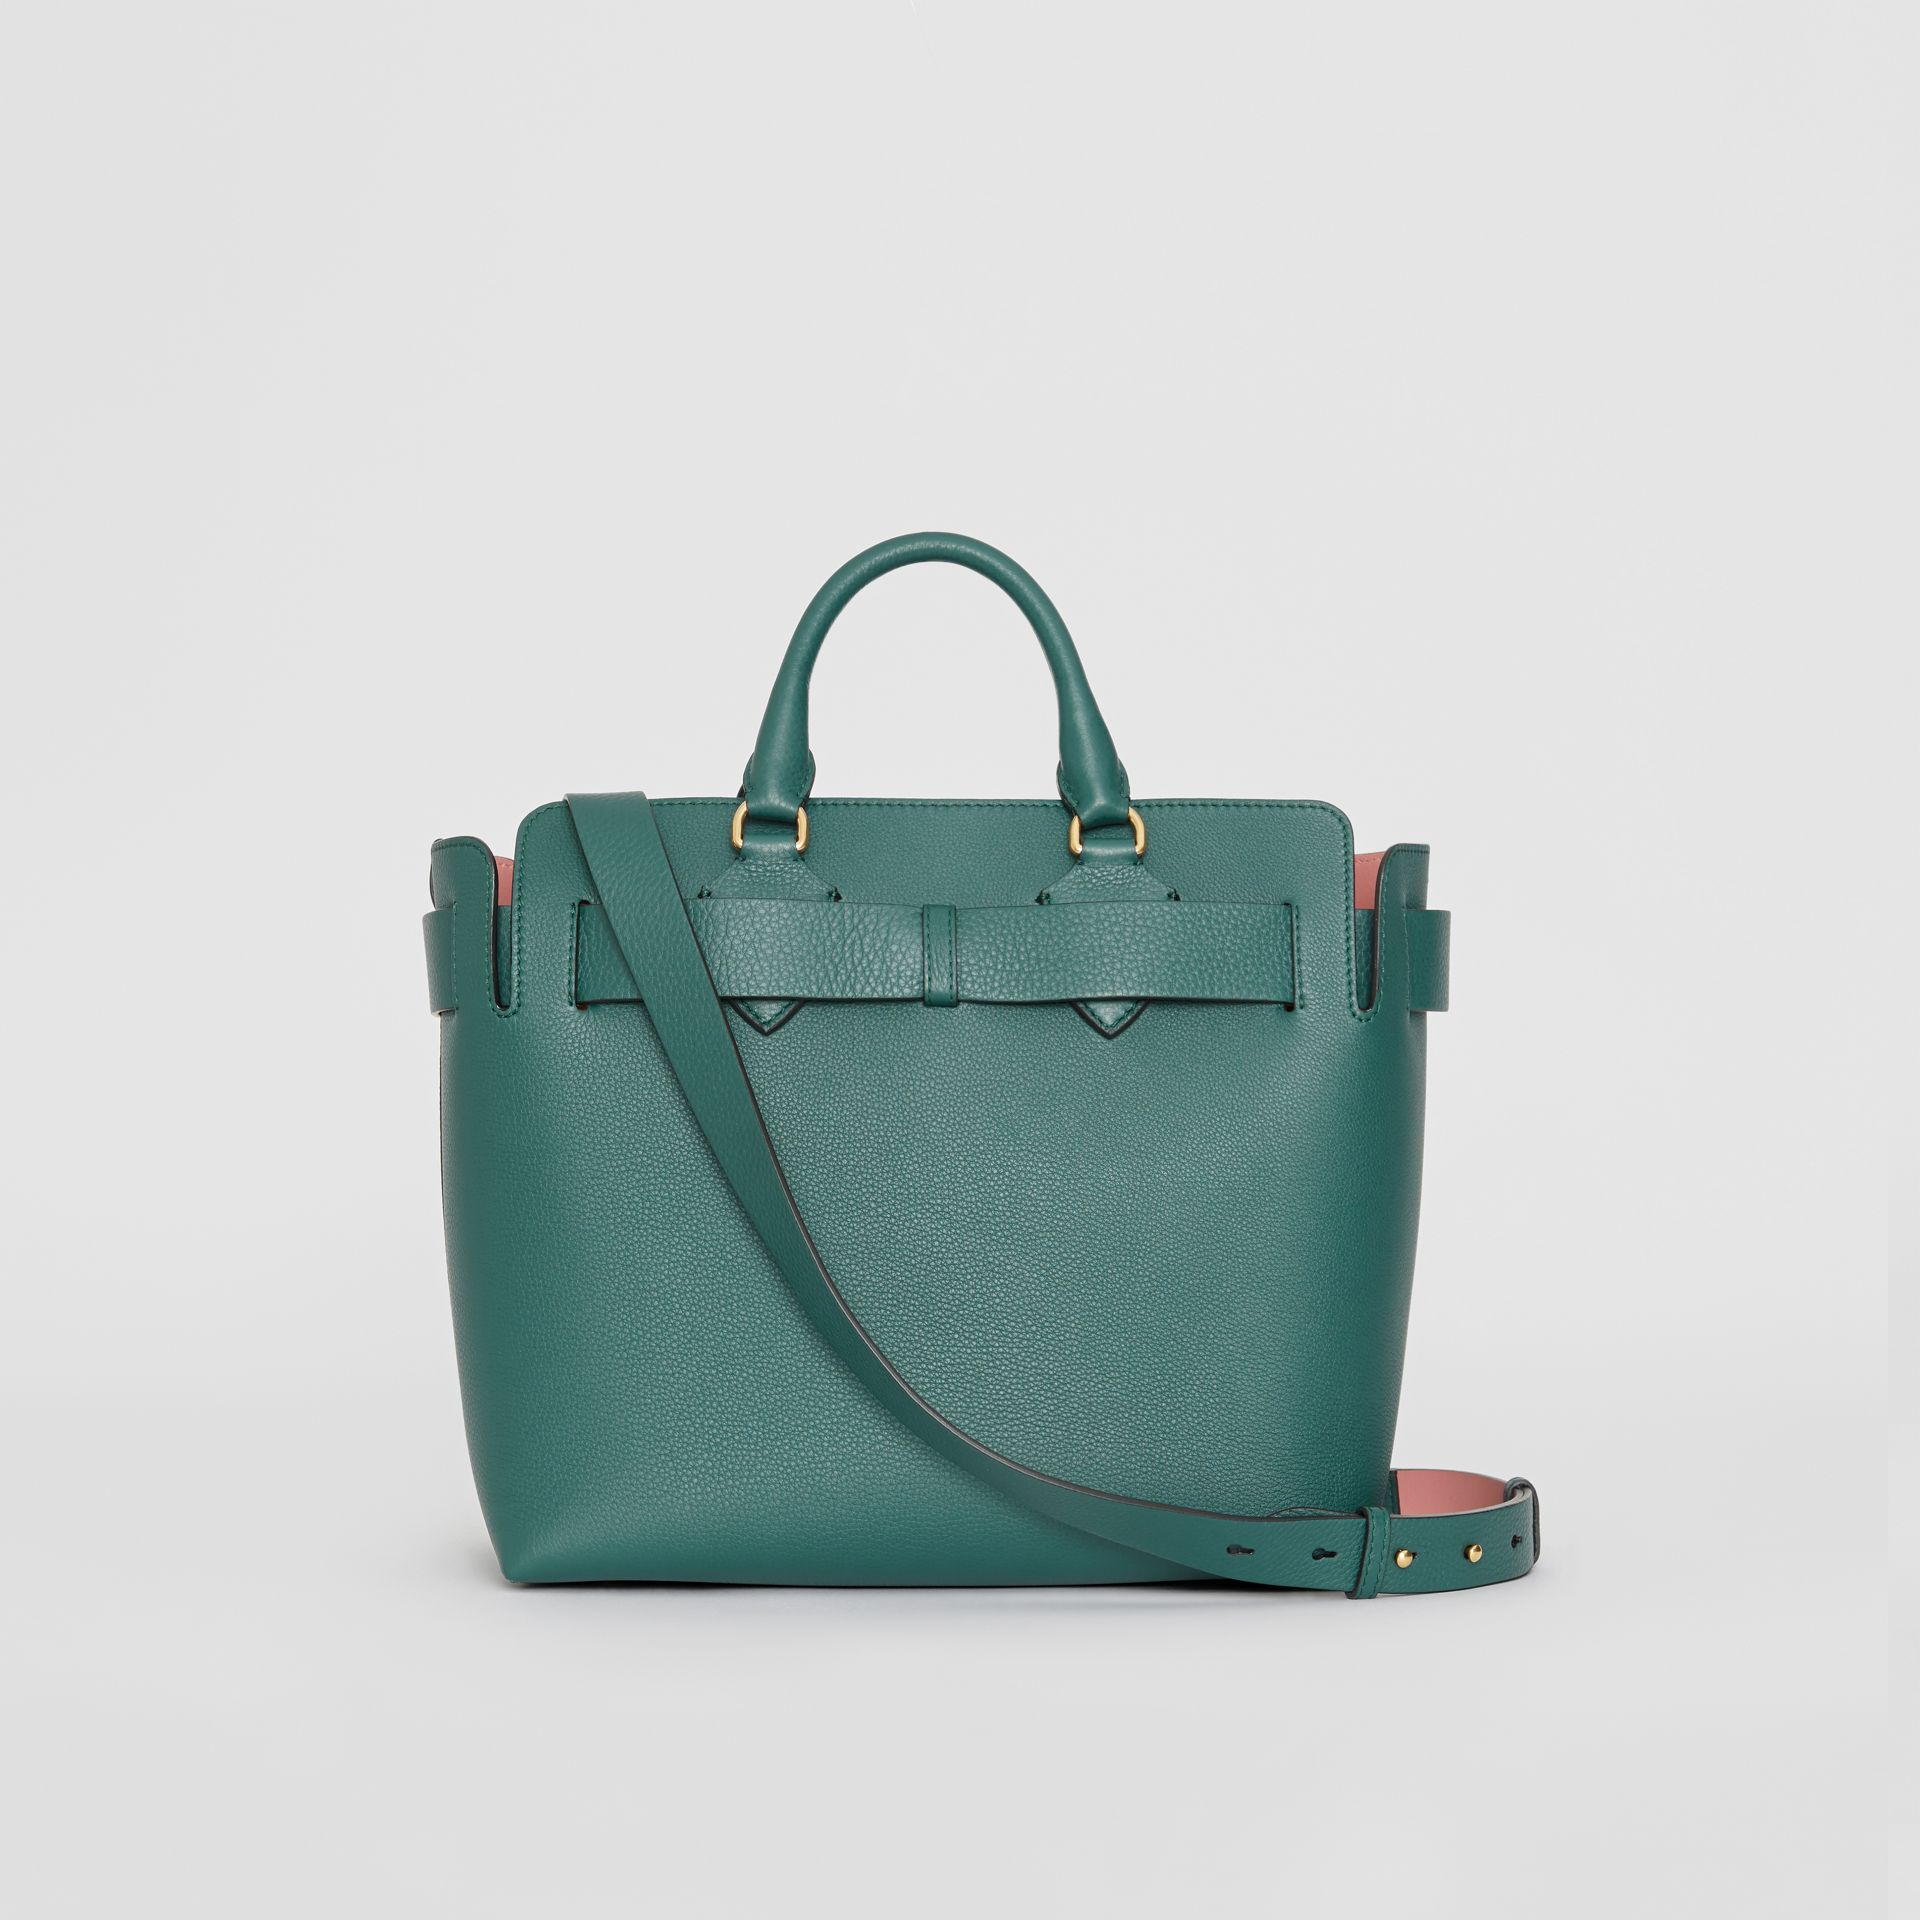 Sac The Belt moyen en cuir (Cyan Foncé) - Femme | Burberry Canada - photo de la galerie 7